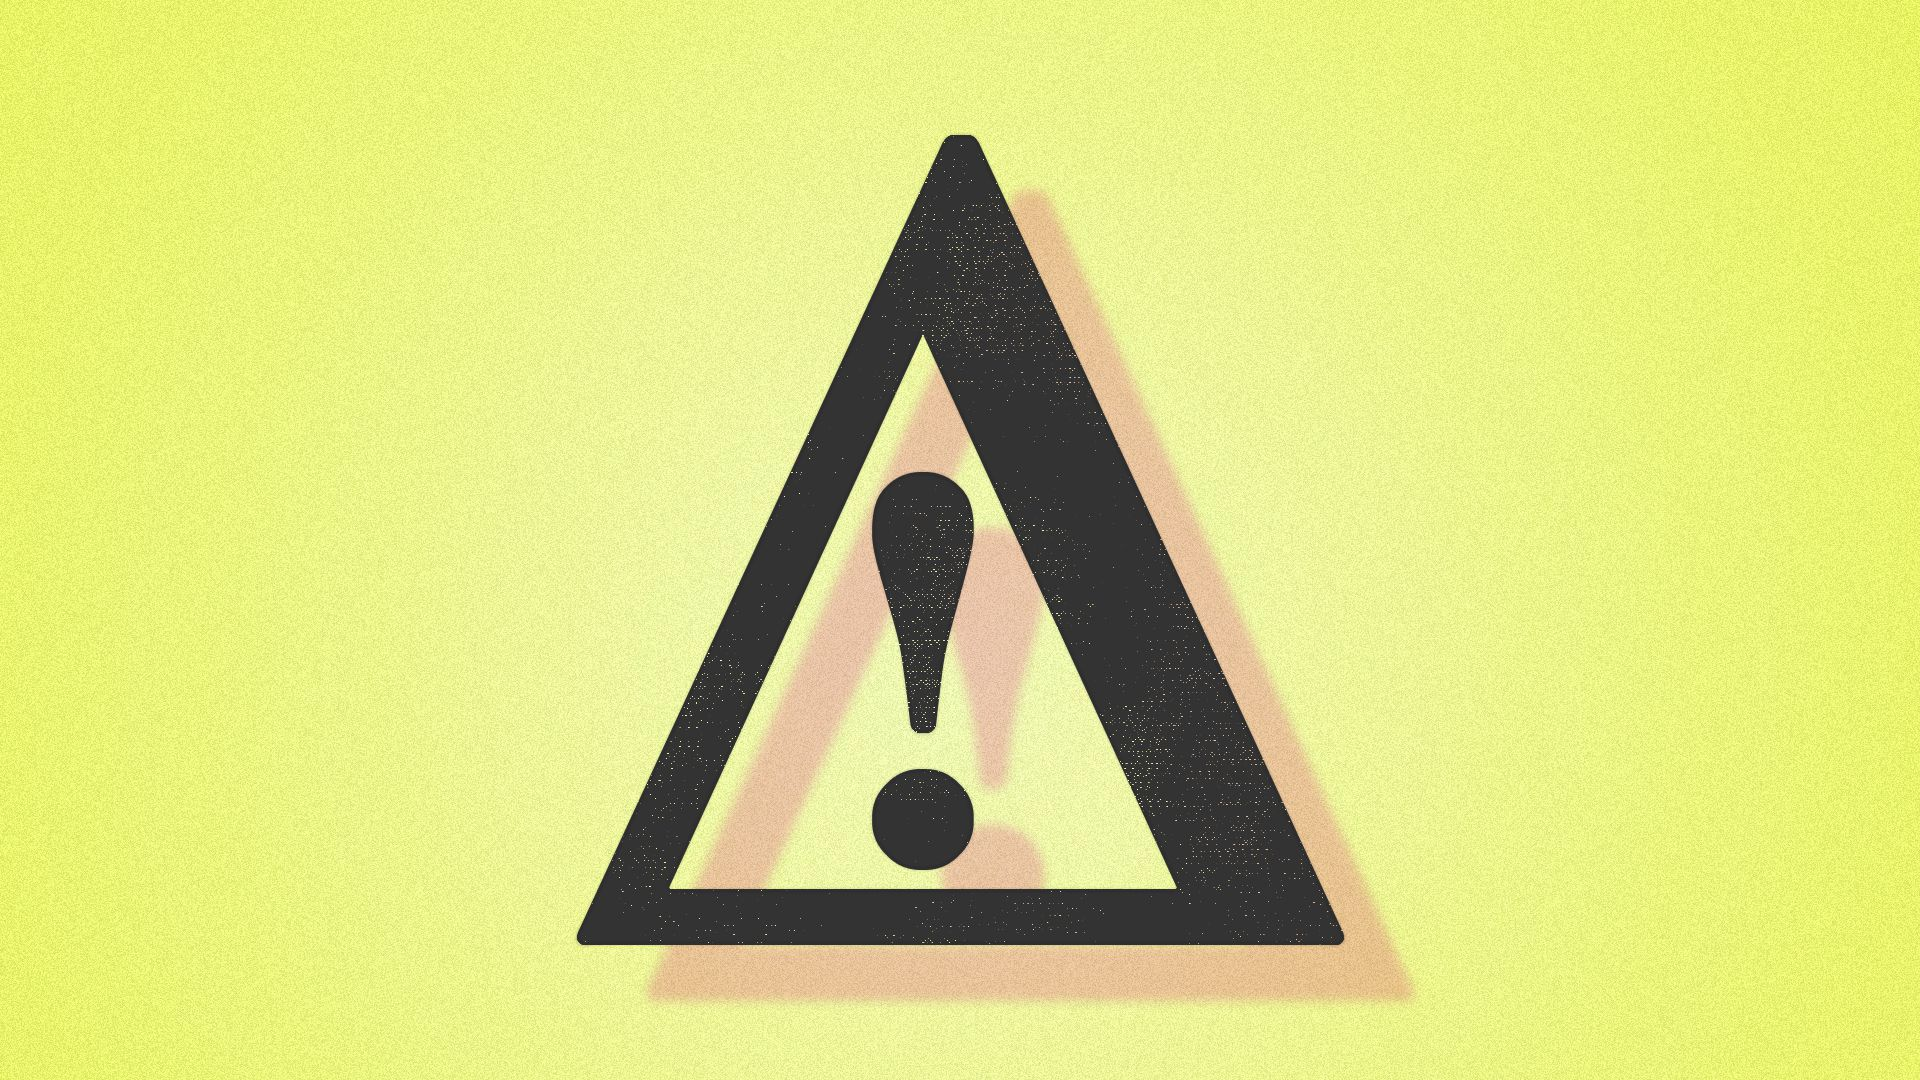 A warning symbol of a triangle with an exclamation point inside.